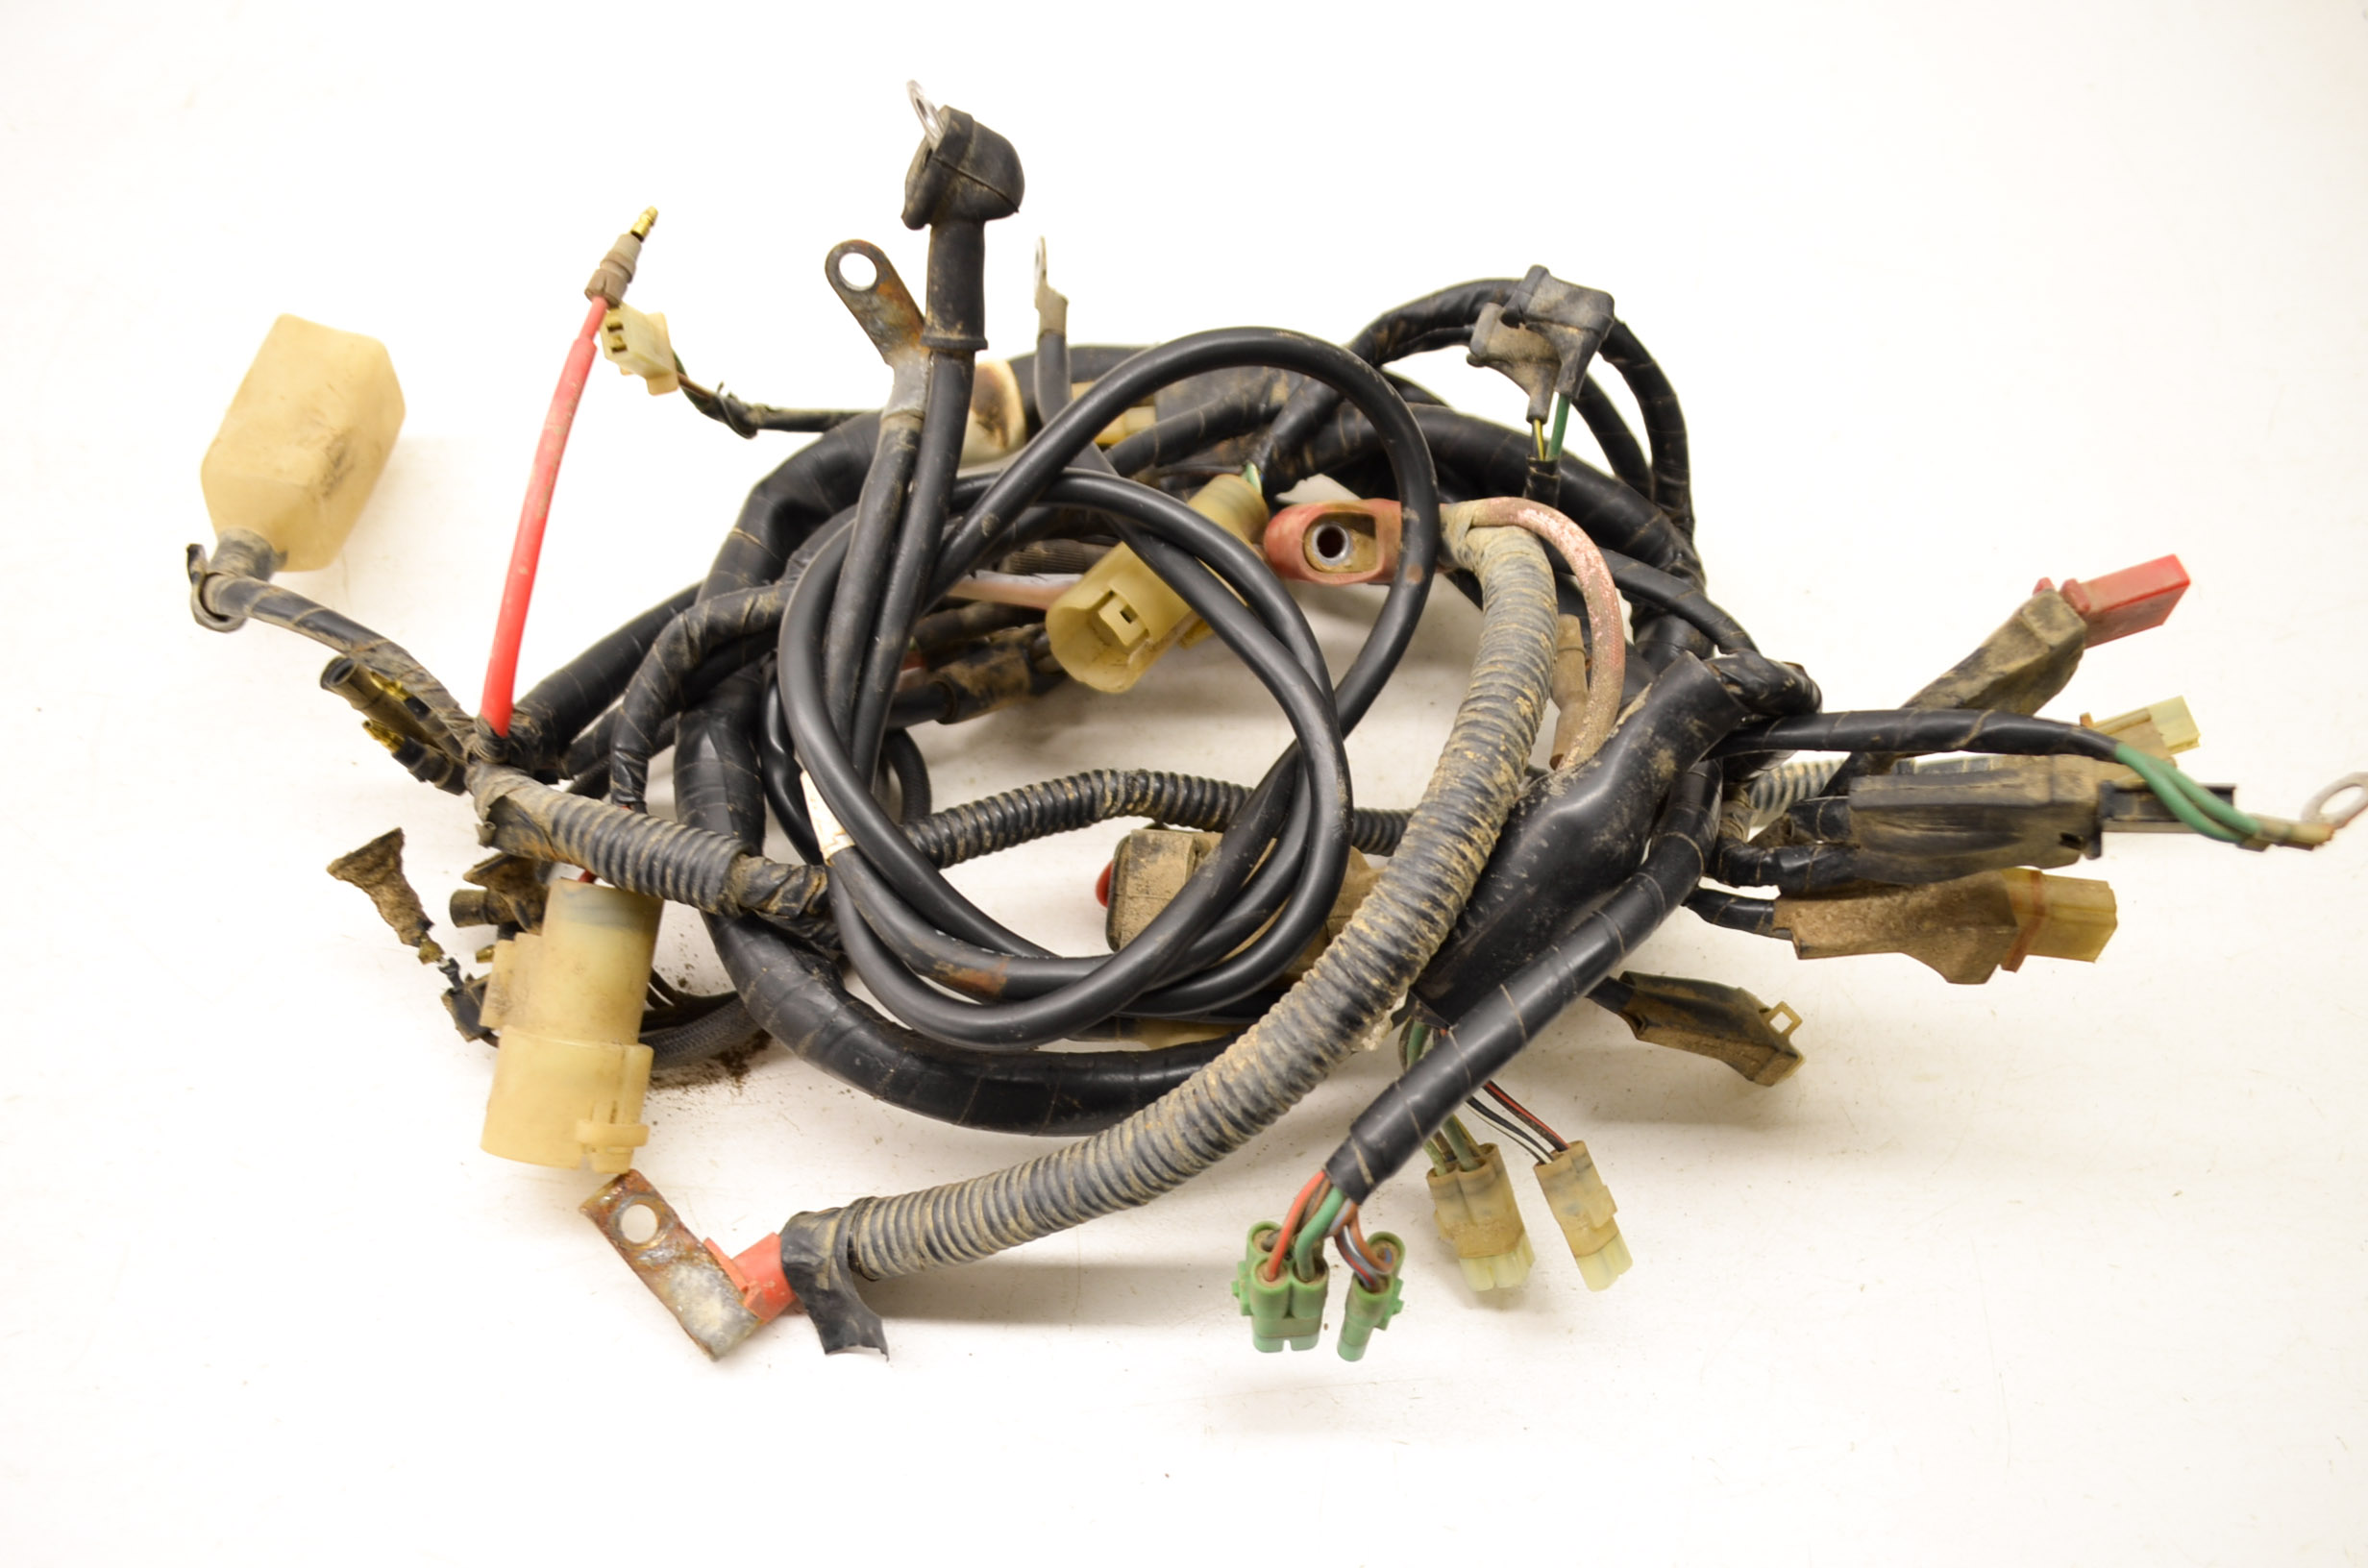 85 Honda Fourtrax 250 Wire Harness Electrical Wiring TRX250 2x4